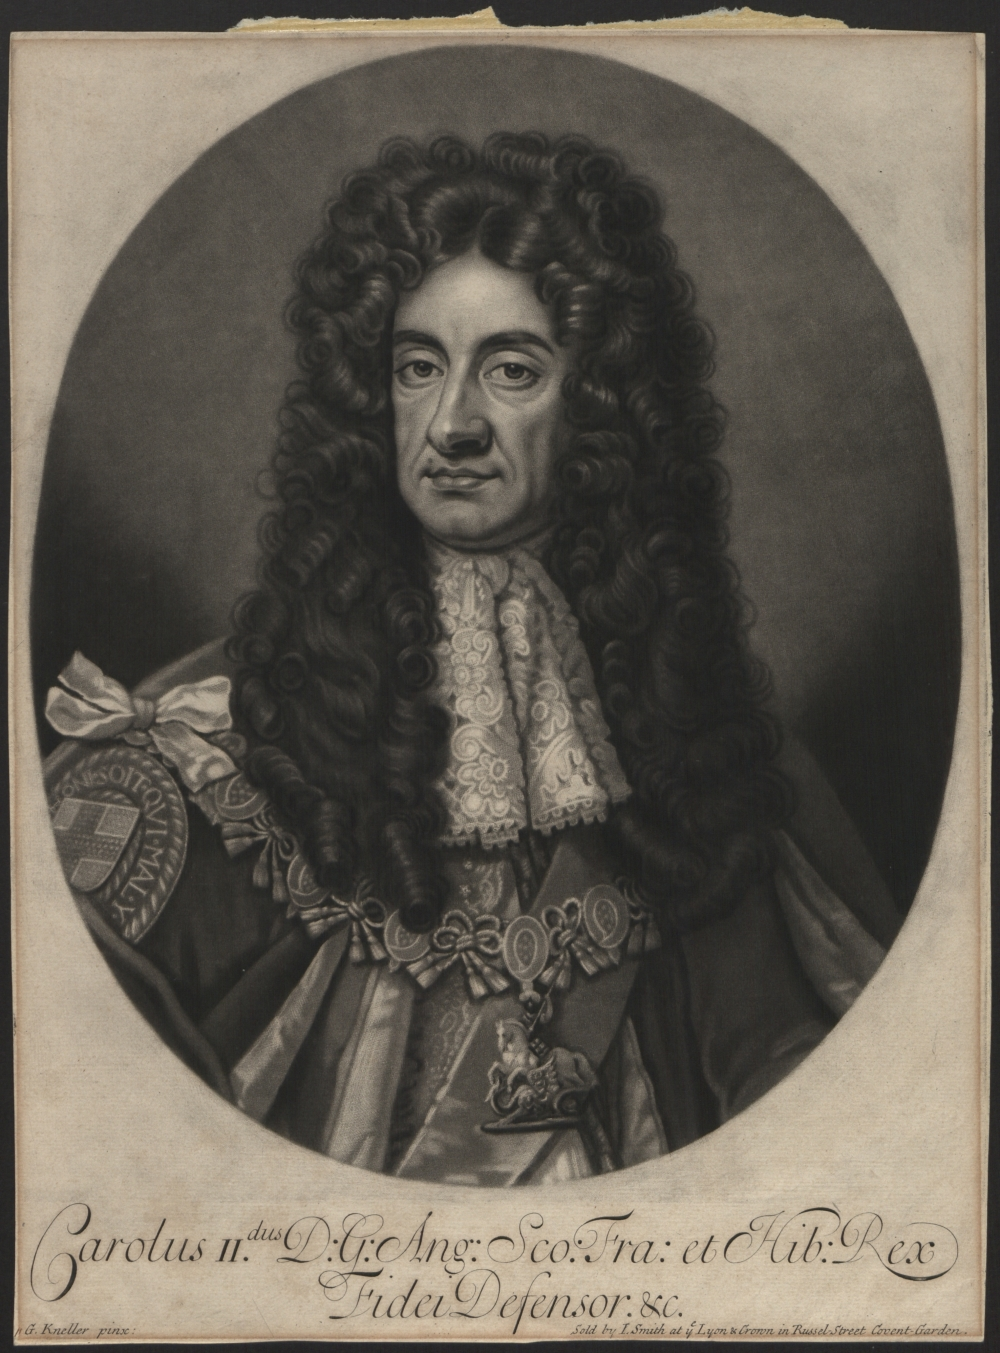 preview image for Print (Mezzotint) Charles II, drawn by G. Kneller, sold by I. Smith, London, Late 17th Century